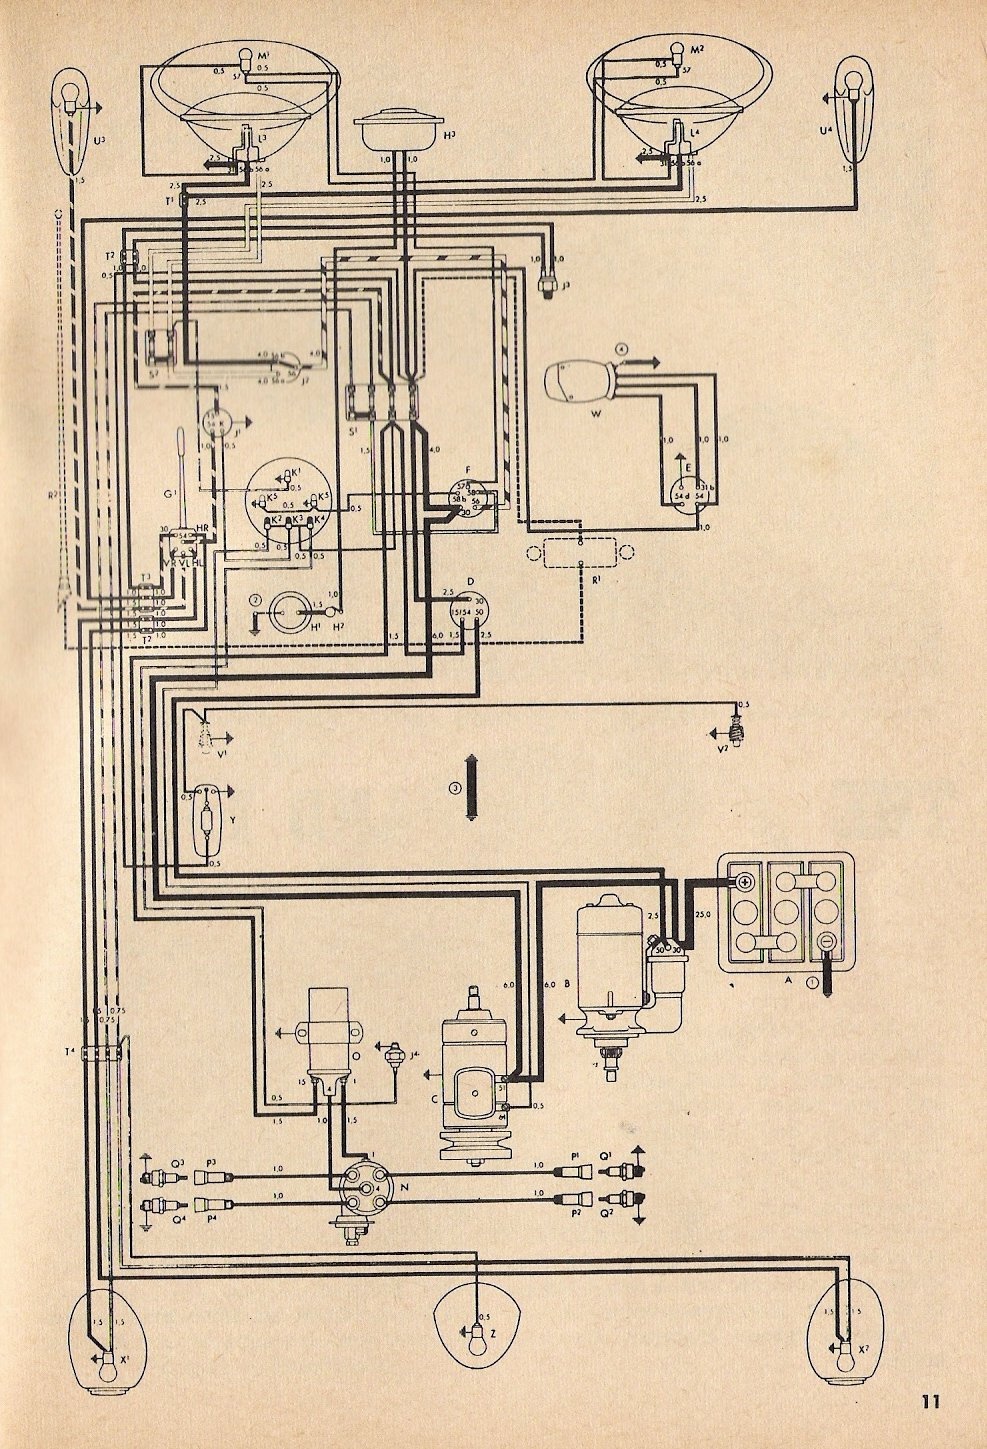 bug_toaug57 1957 beetle wiring diagram thegoldenbug com 2002 vw beetle wiring diagram at fashall.co